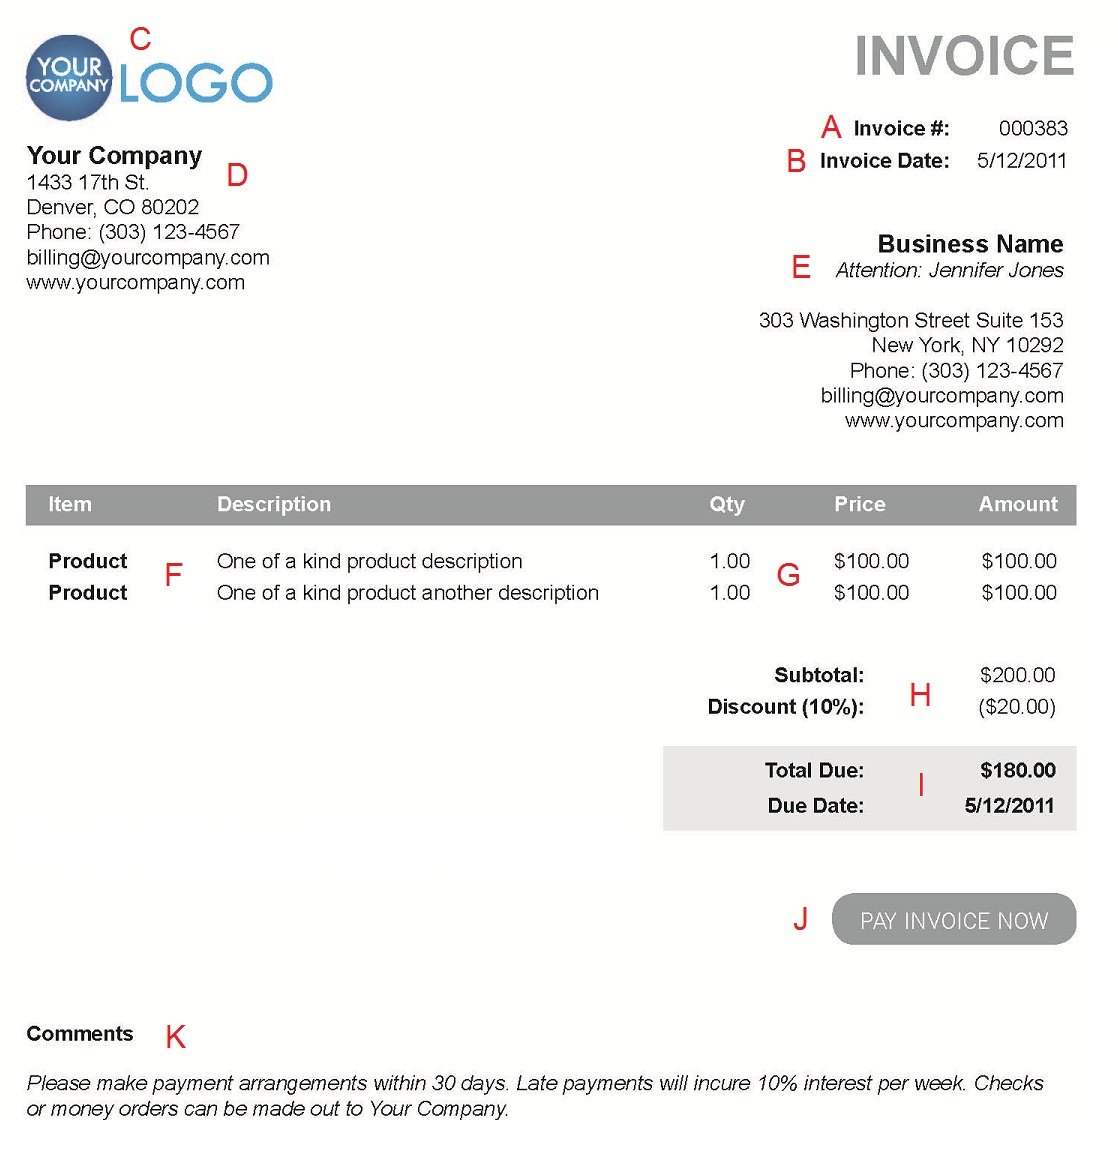 Ultrablogus  Splendid The  Different Sections Of An Electronic Payment Invoice With Licious A  With Awesome Mock Invoice Template Also Format Of Export Invoice In Addition Create Your Own Invoice Template And Sage Invoicing As Well As Printing Invoice Books Additionally Invoice Purchase Order Process From Paysimplecom With Ultrablogus  Licious The  Different Sections Of An Electronic Payment Invoice With Awesome A  And Splendid Mock Invoice Template Also Format Of Export Invoice In Addition Create Your Own Invoice Template From Paysimplecom